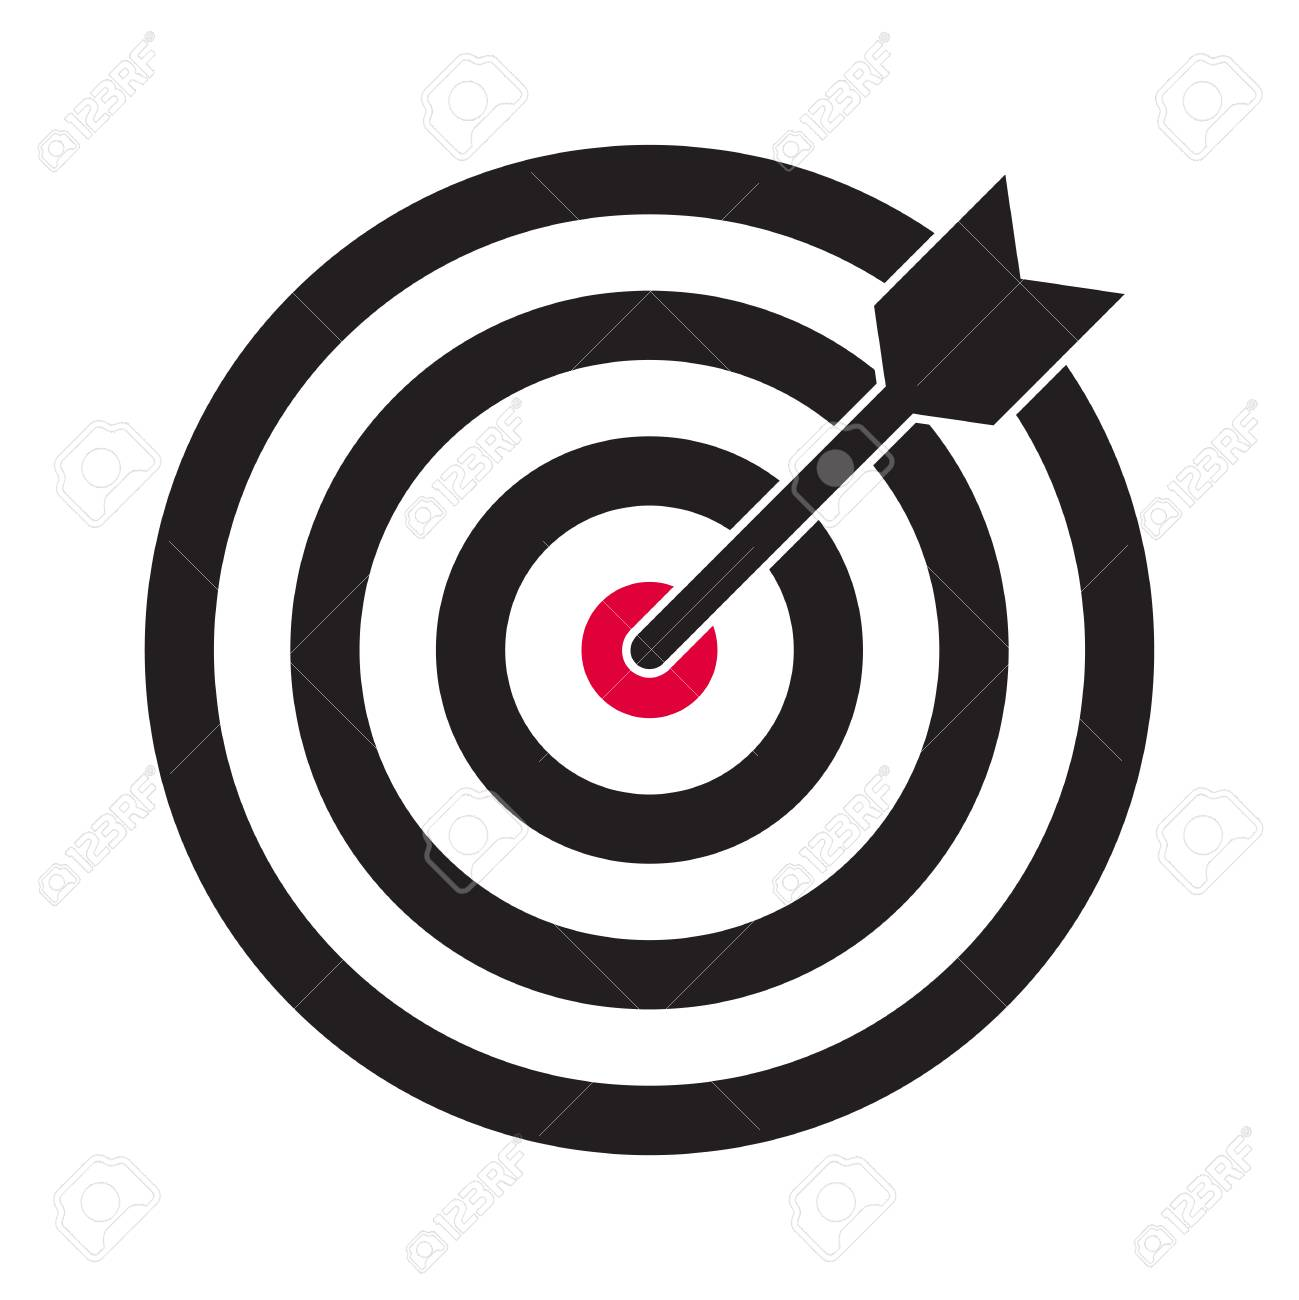 Target and arrow vector icon. Darts dartboard and business aim target symbol - 121672548